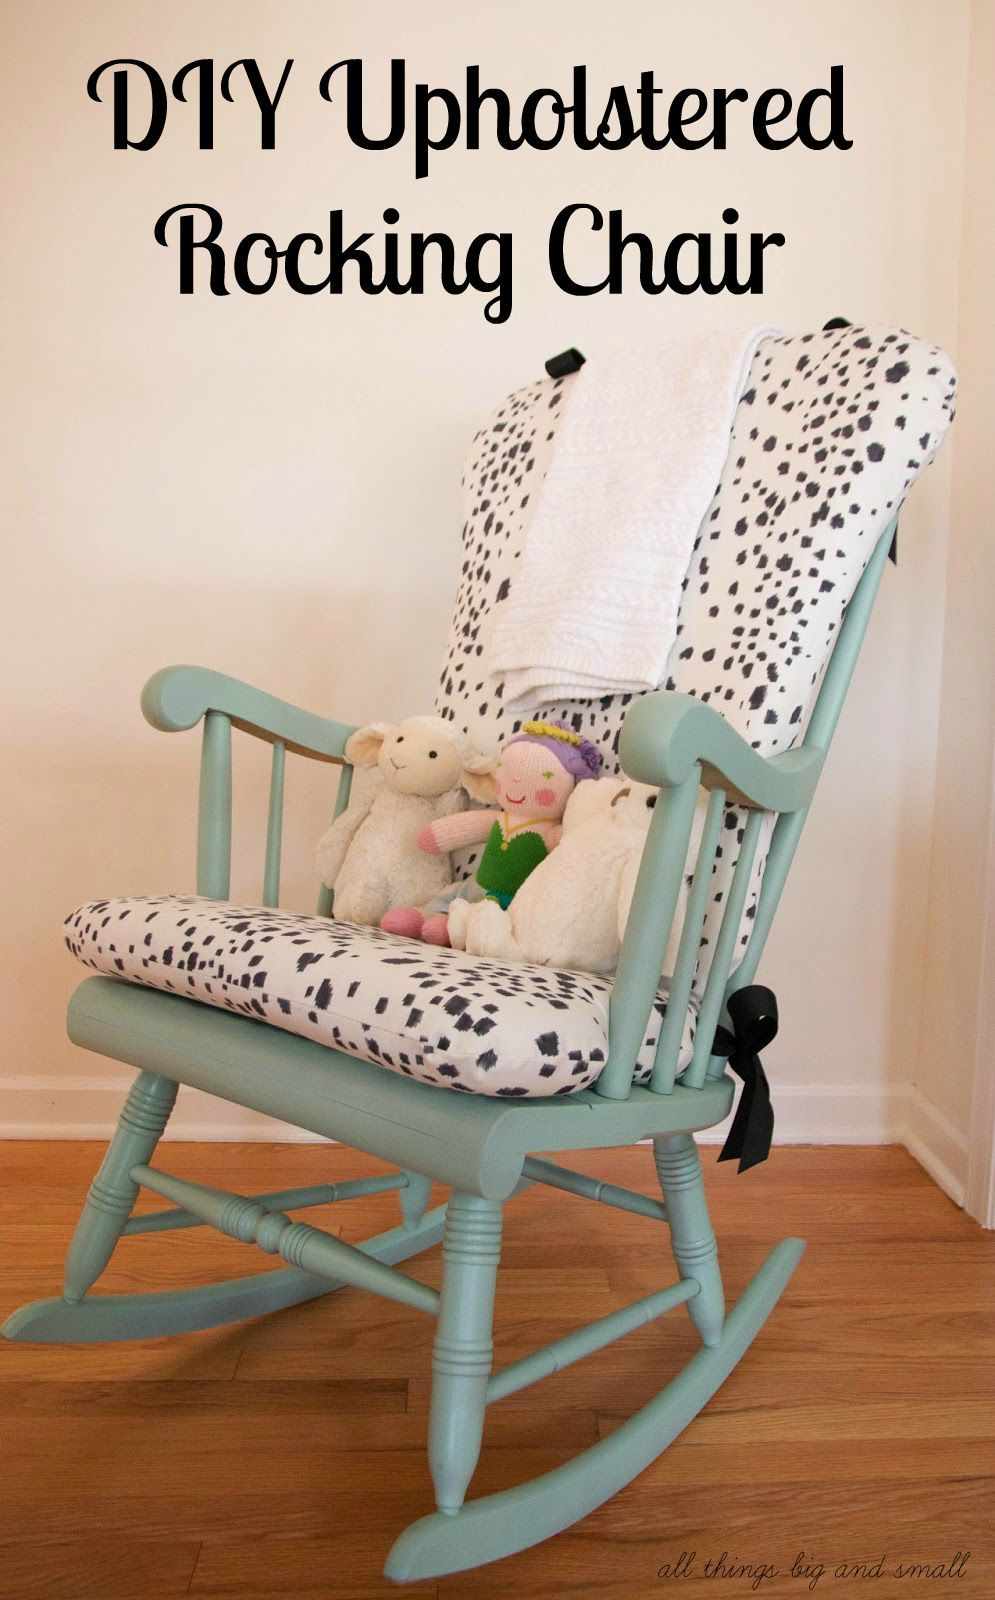 Diy chair upholstery - A Step By Step Custom Diy Upholstered Rocking Chair Tutorial That Only Cost 100